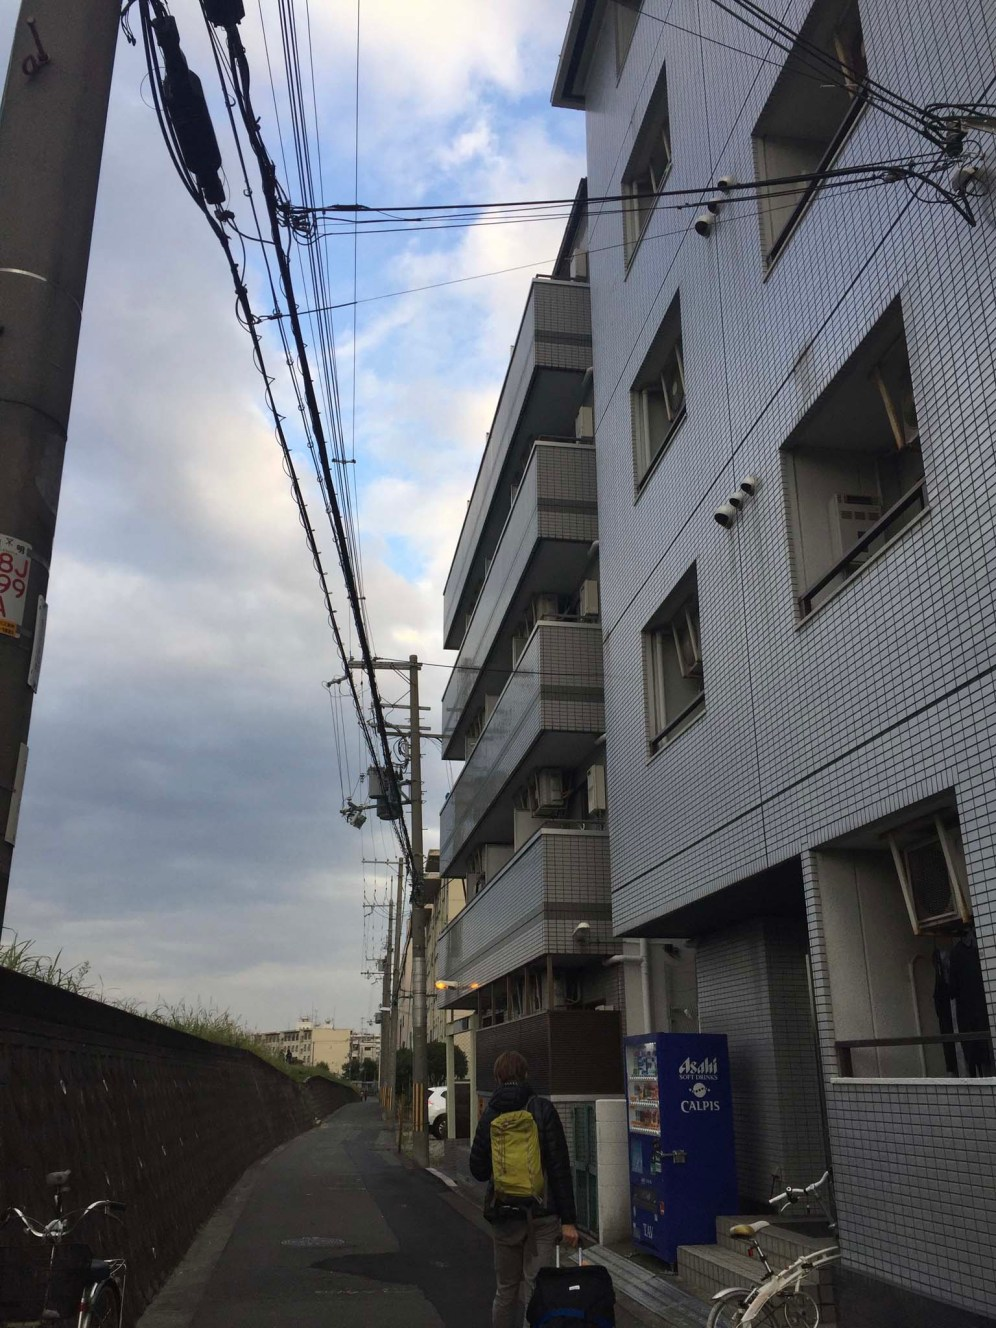 Our apartment building in Northern Osaka. We are on the second floor with a river view. $30 Canadian a night!